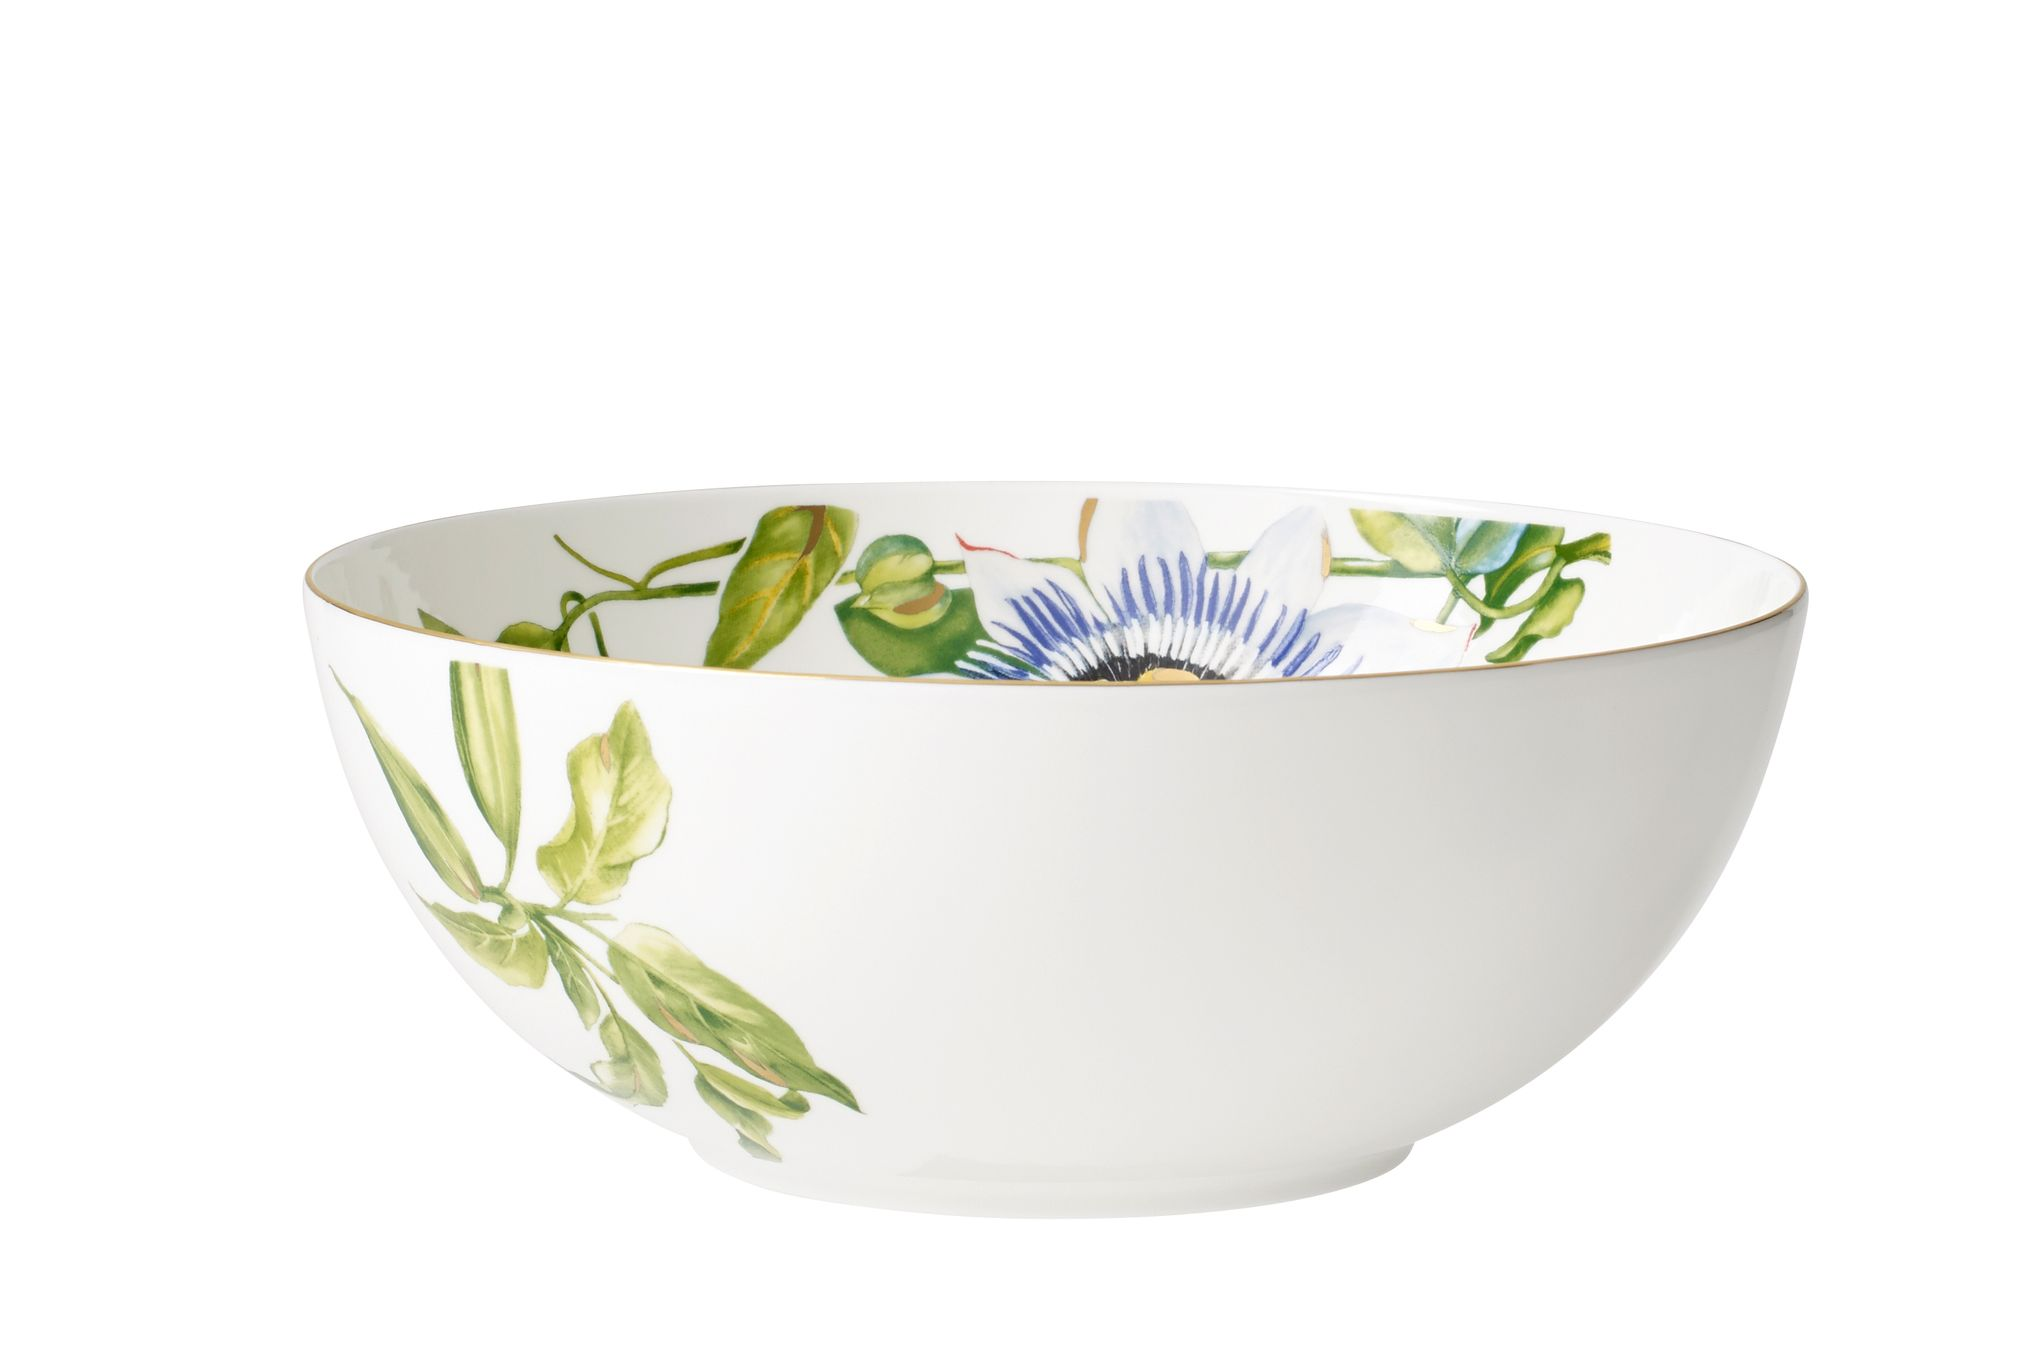 Villeroy & Boch Amazonia Serving Bowl 21cm thumb 1